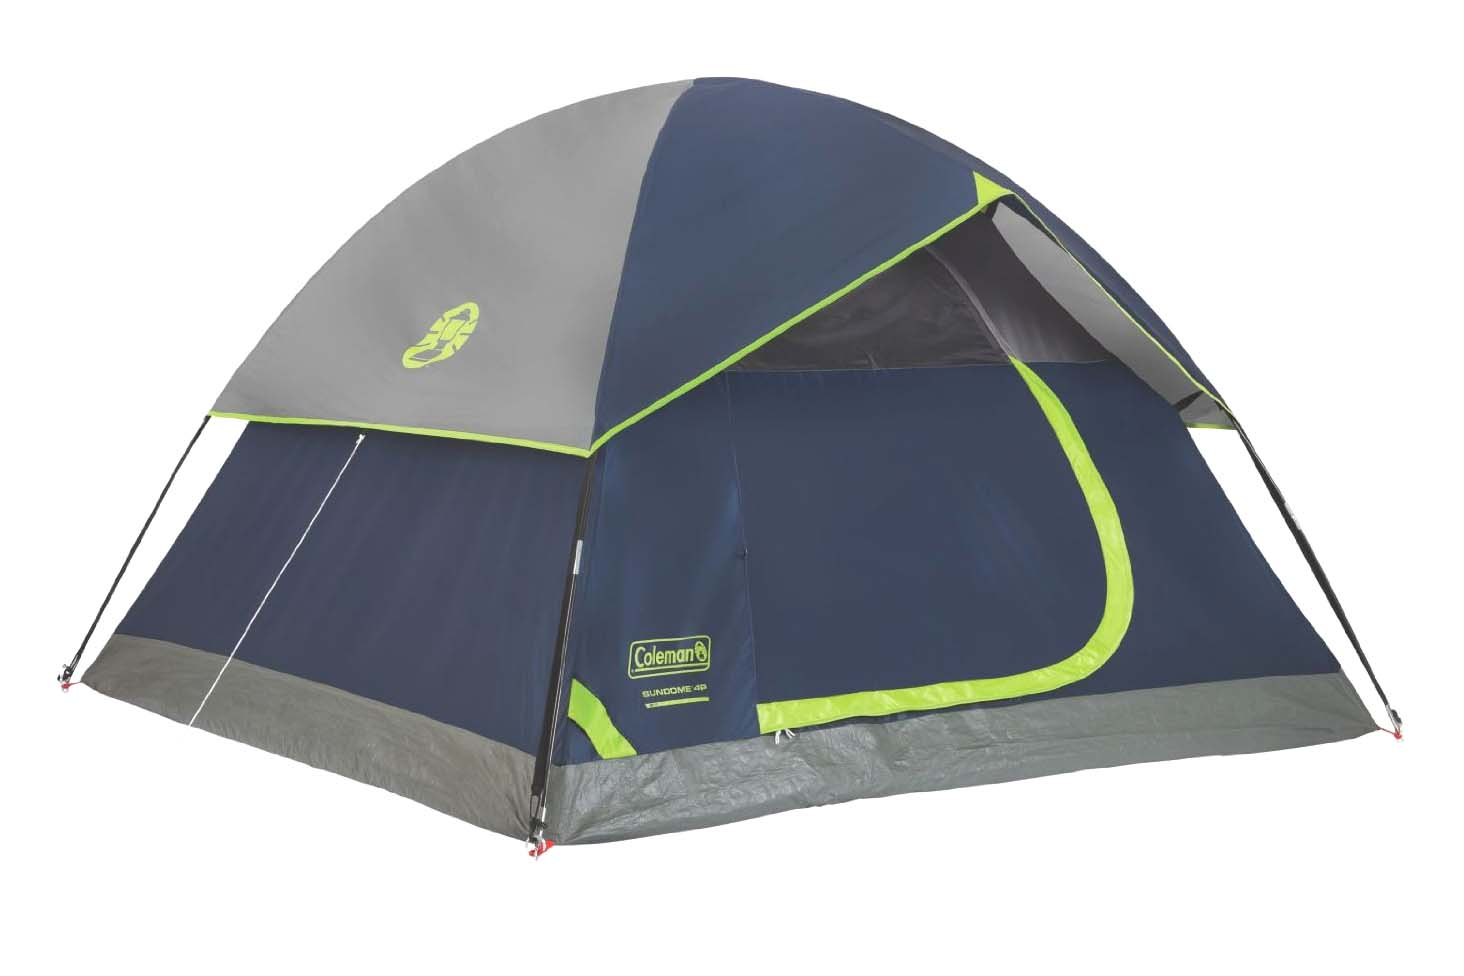 3 Person Tent - Available in 2 Colors 4.5 stars - $48 (Prime)